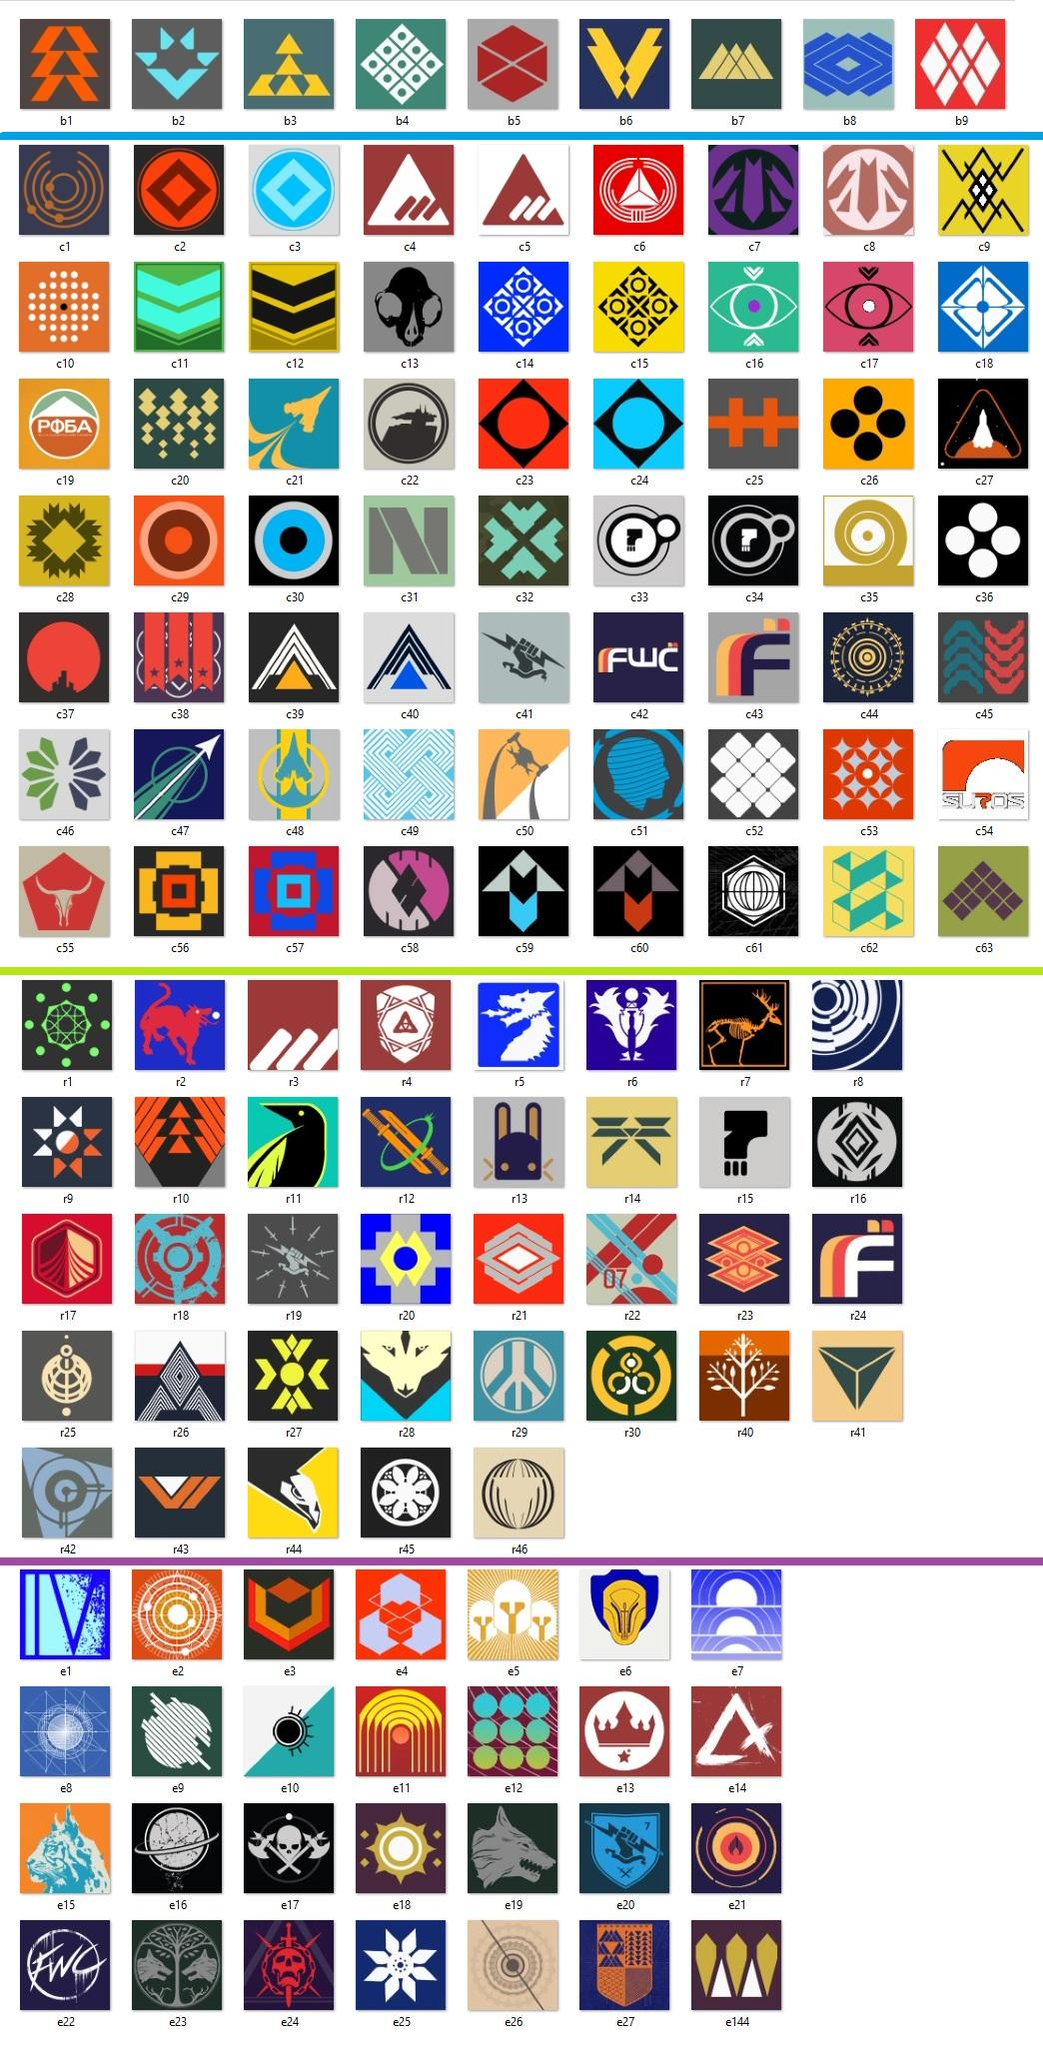 all in game icons so far page 1 of 1